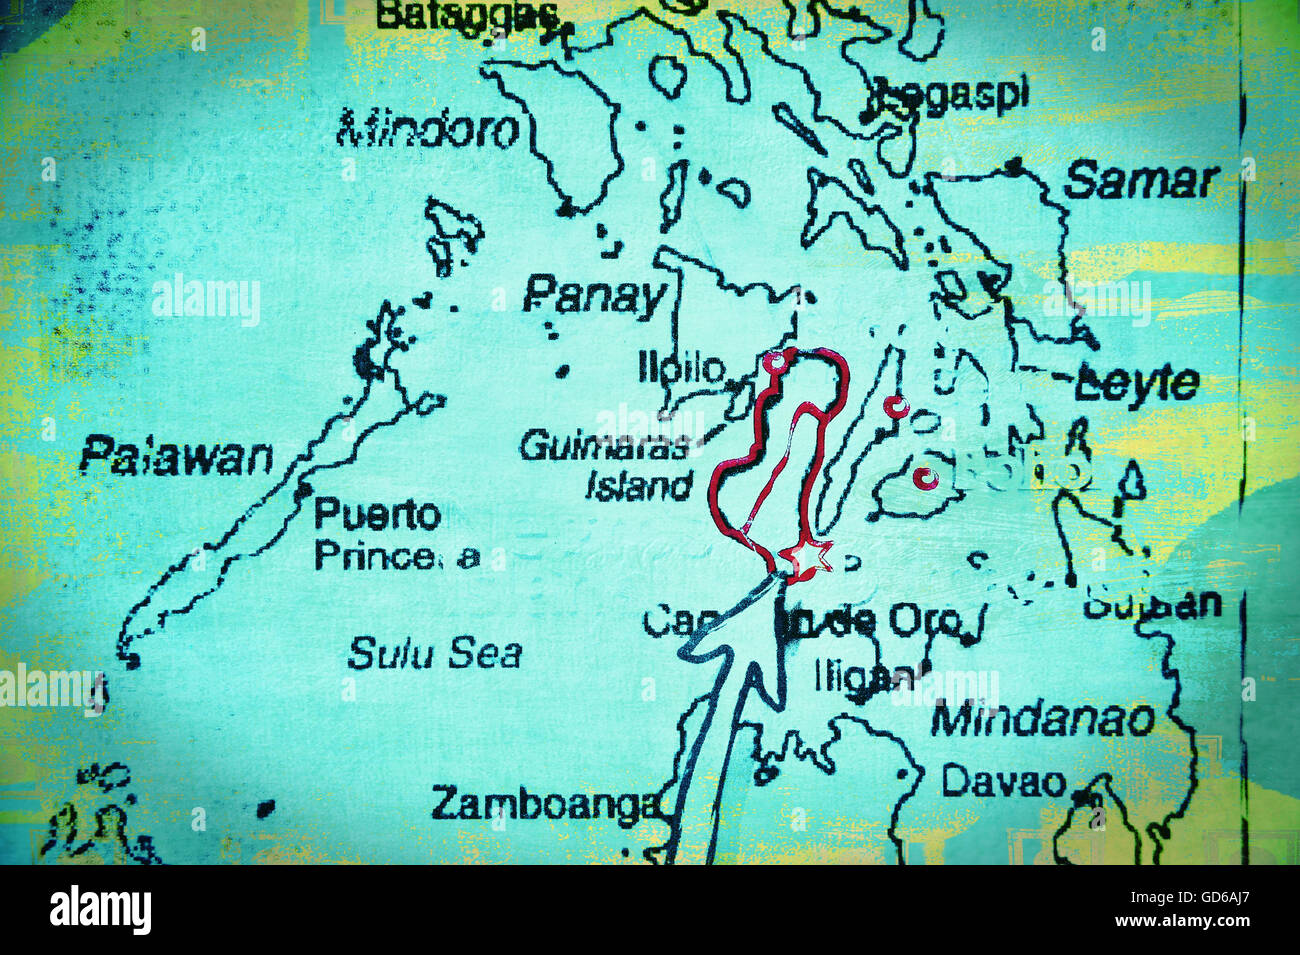 Map of the Visayas Philippines Asia Stock Photo Royalty Free